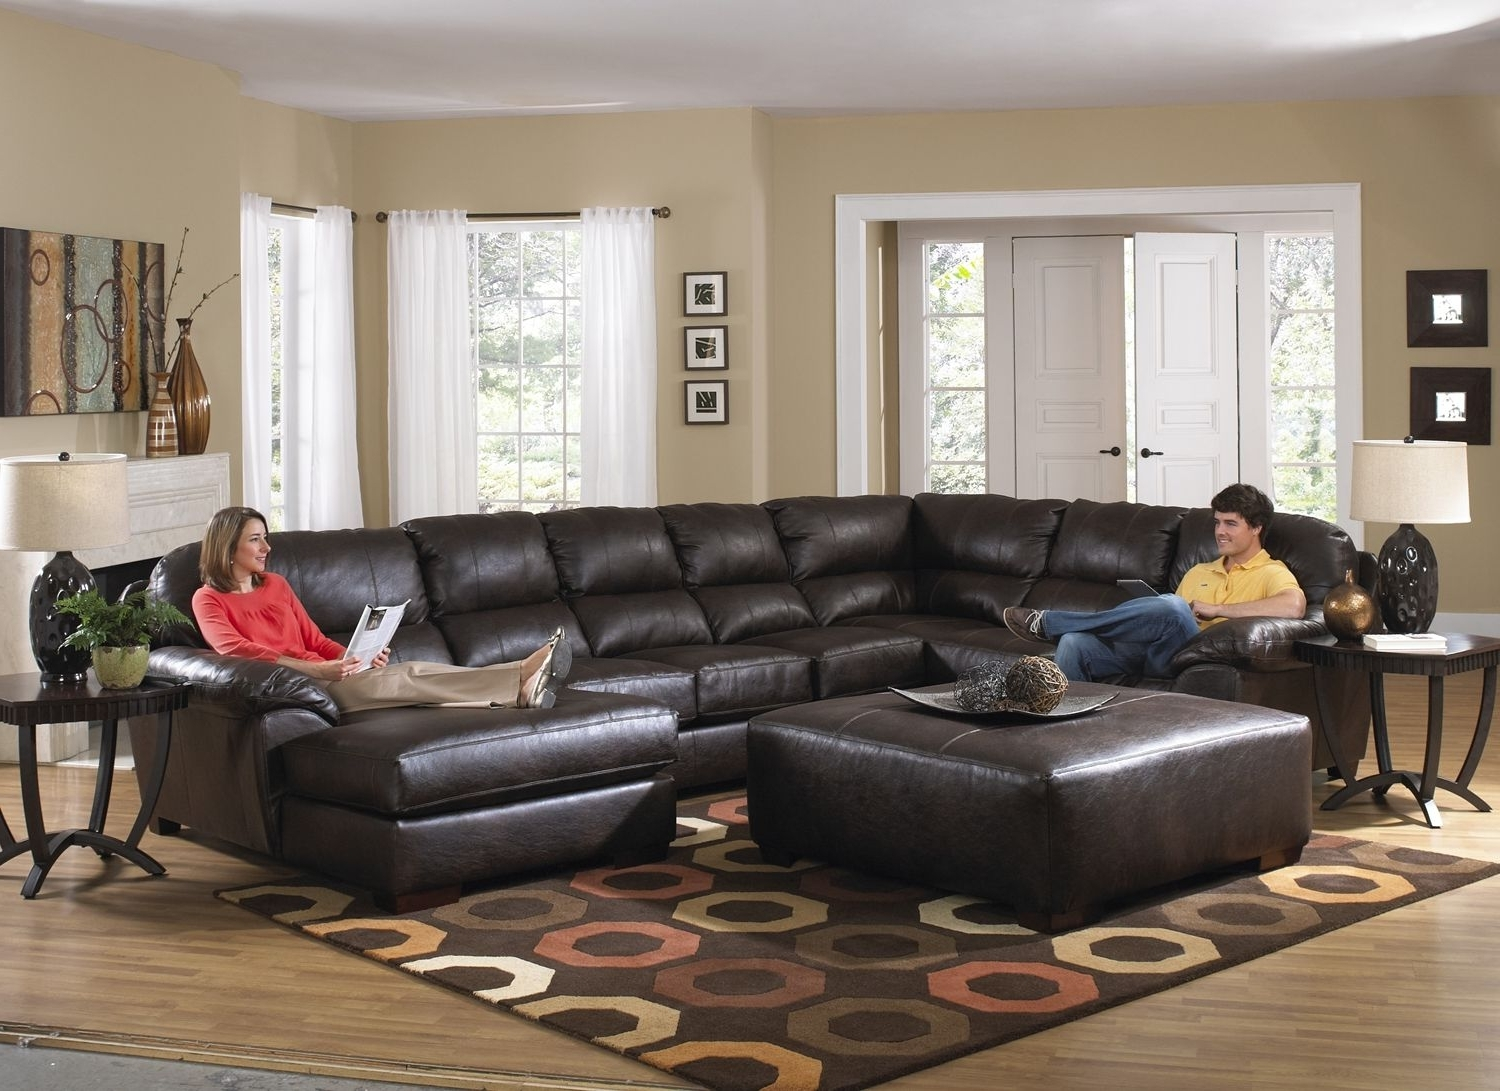 Janesville Wi Sectional Sofas with regard to Well-known Lawson Godiva U Shape Sectional Sofa W/ Chaise In Chocolate Bonded